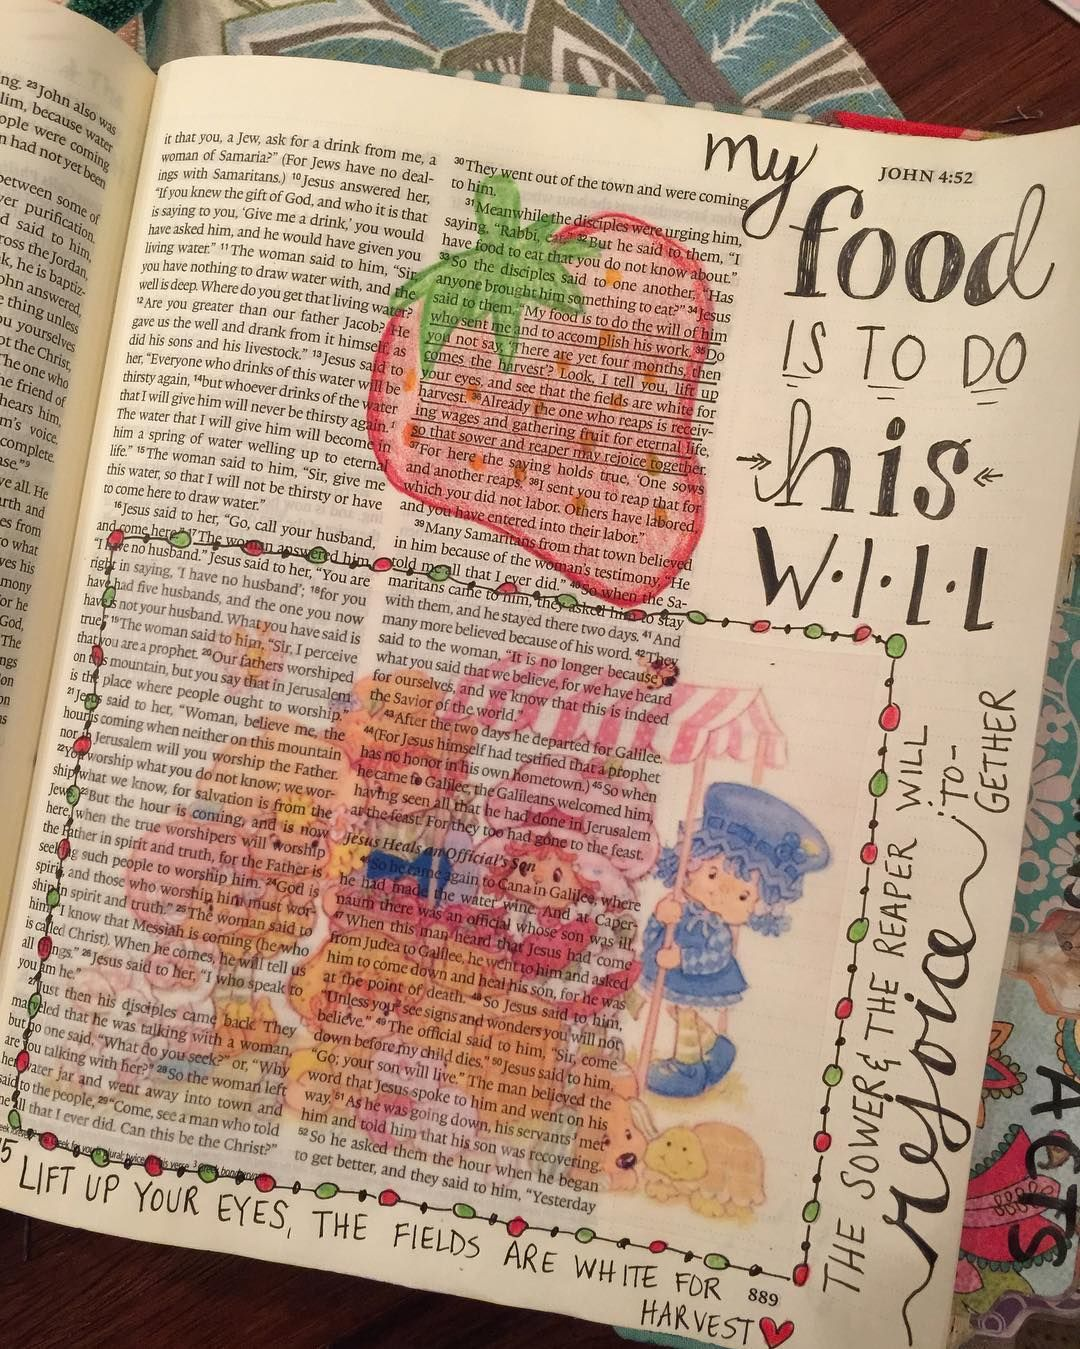 #ilovethis #journalingbible #biblejournalingcommunity #biblejournaling by my_journey_with_jesus